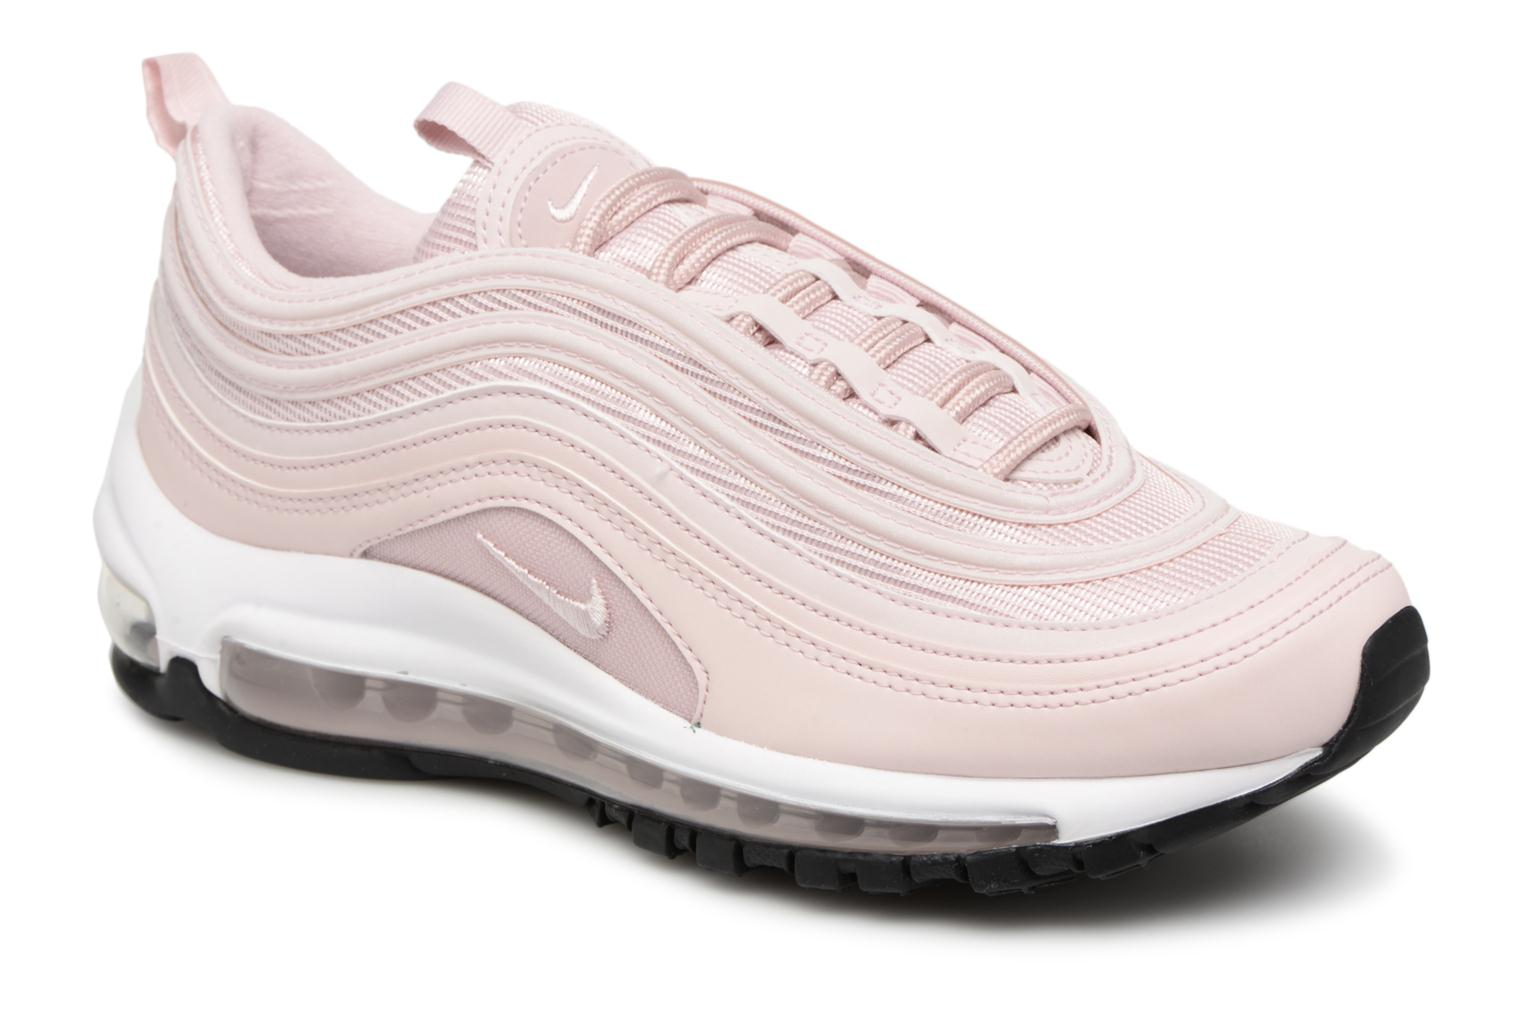 official photos 3f783 f5436 Baskets Nike W Air Max 97 Rose vue détail/paire